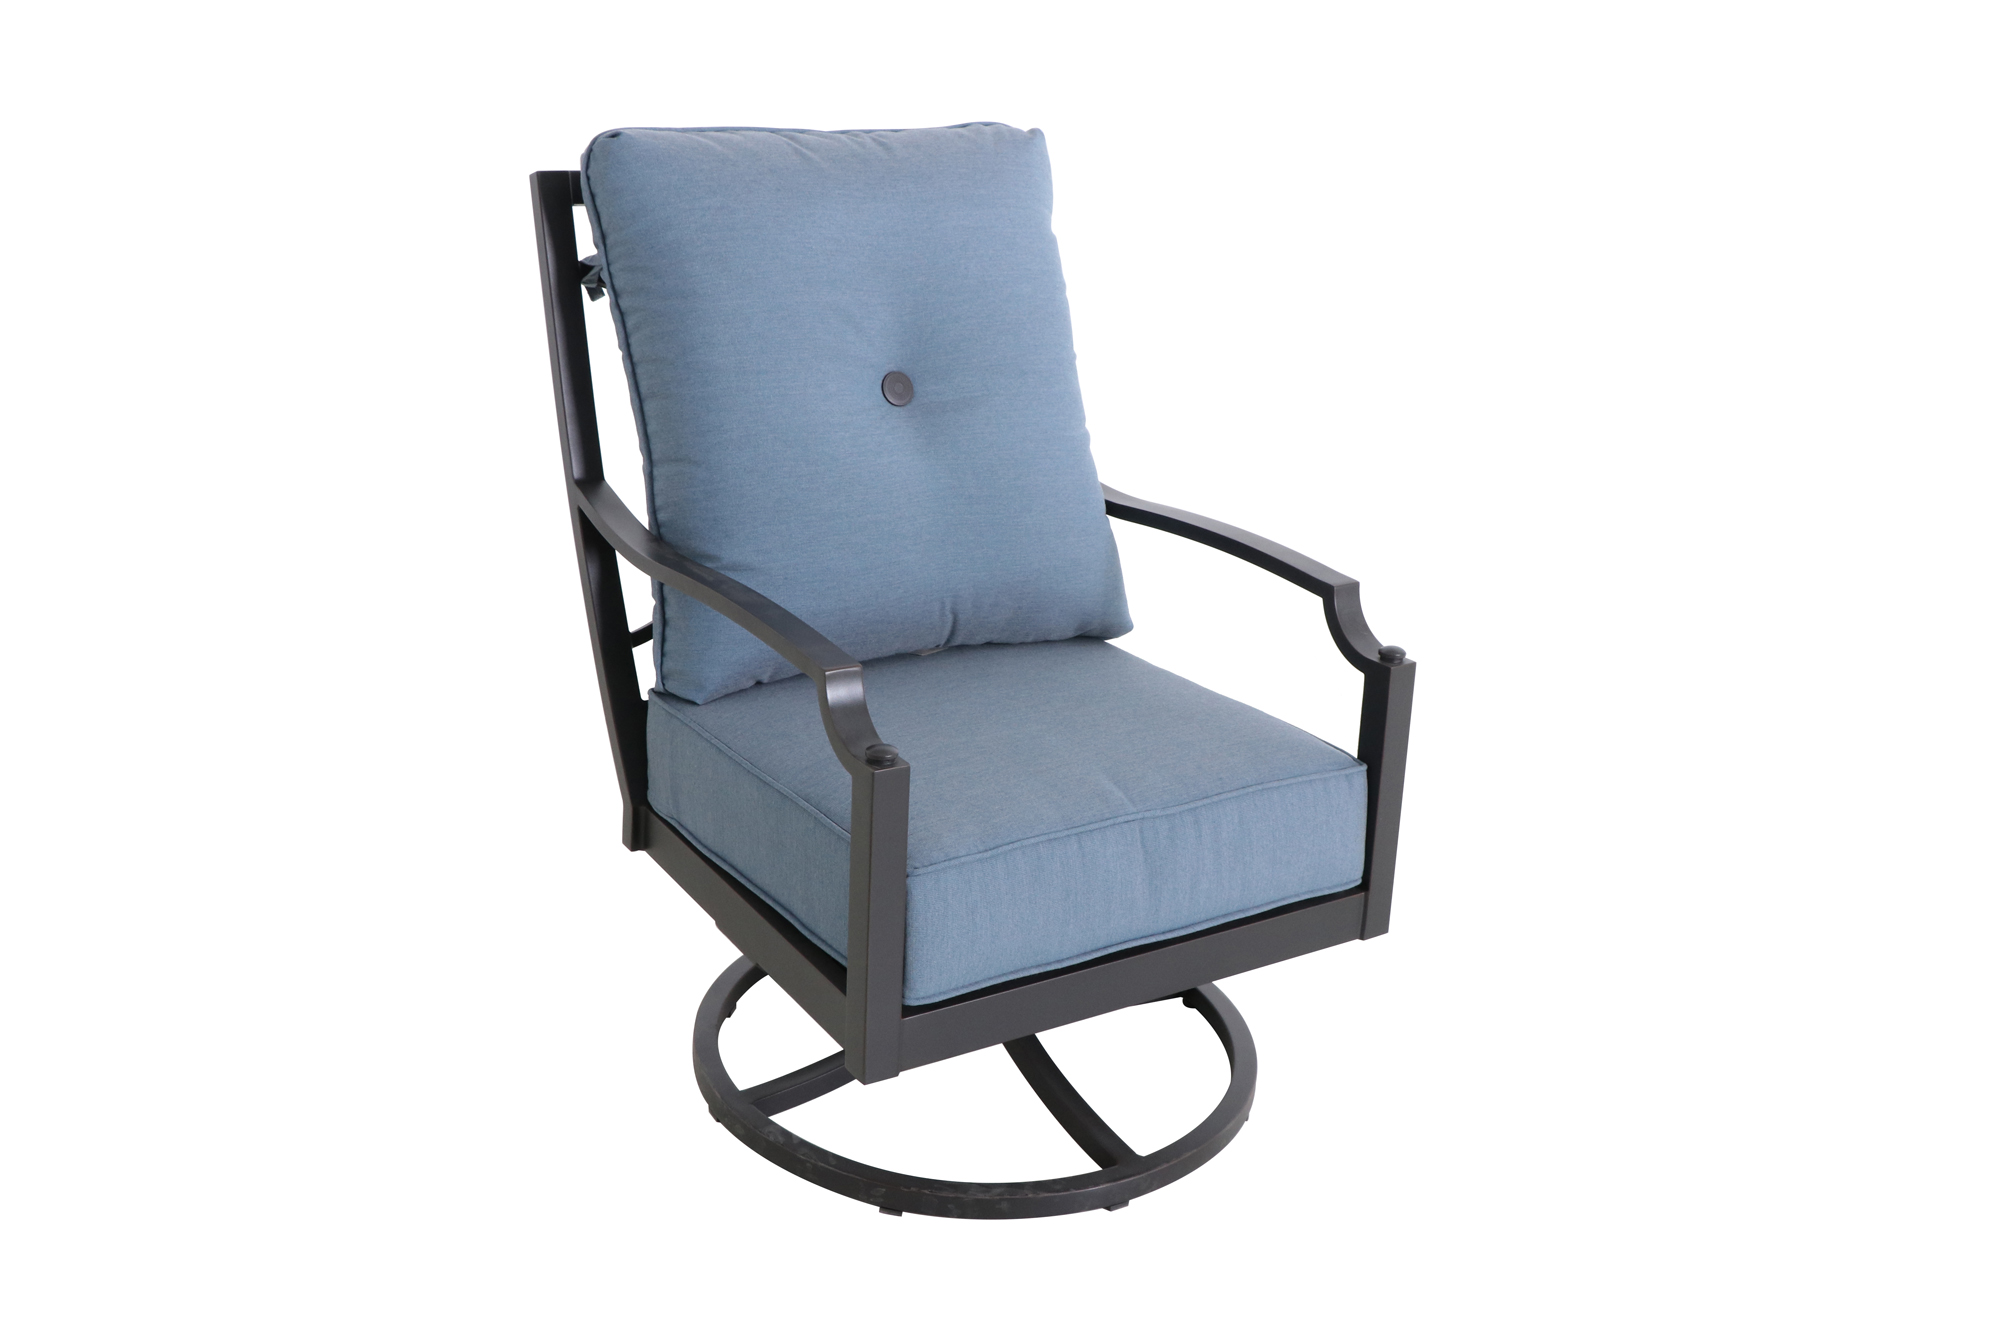 Aragon Swivel High Back Chair